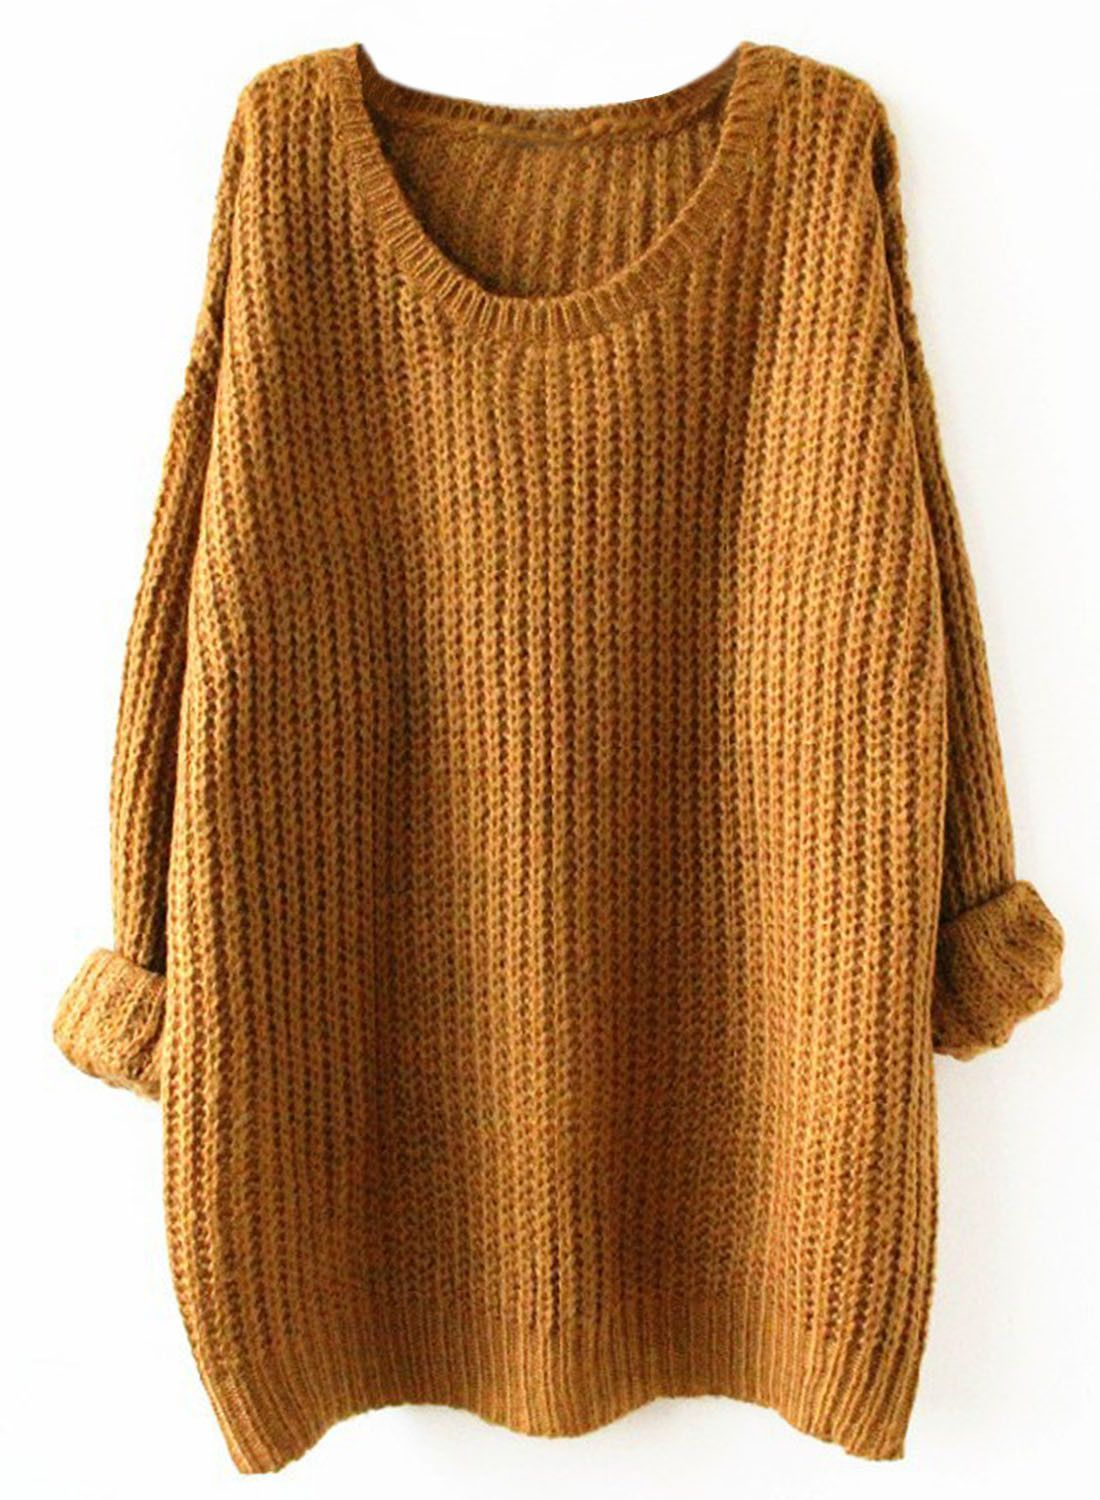 Brown Oversized Loose Fit Chunky Knit Sweater | Brown, Scoop neck ...